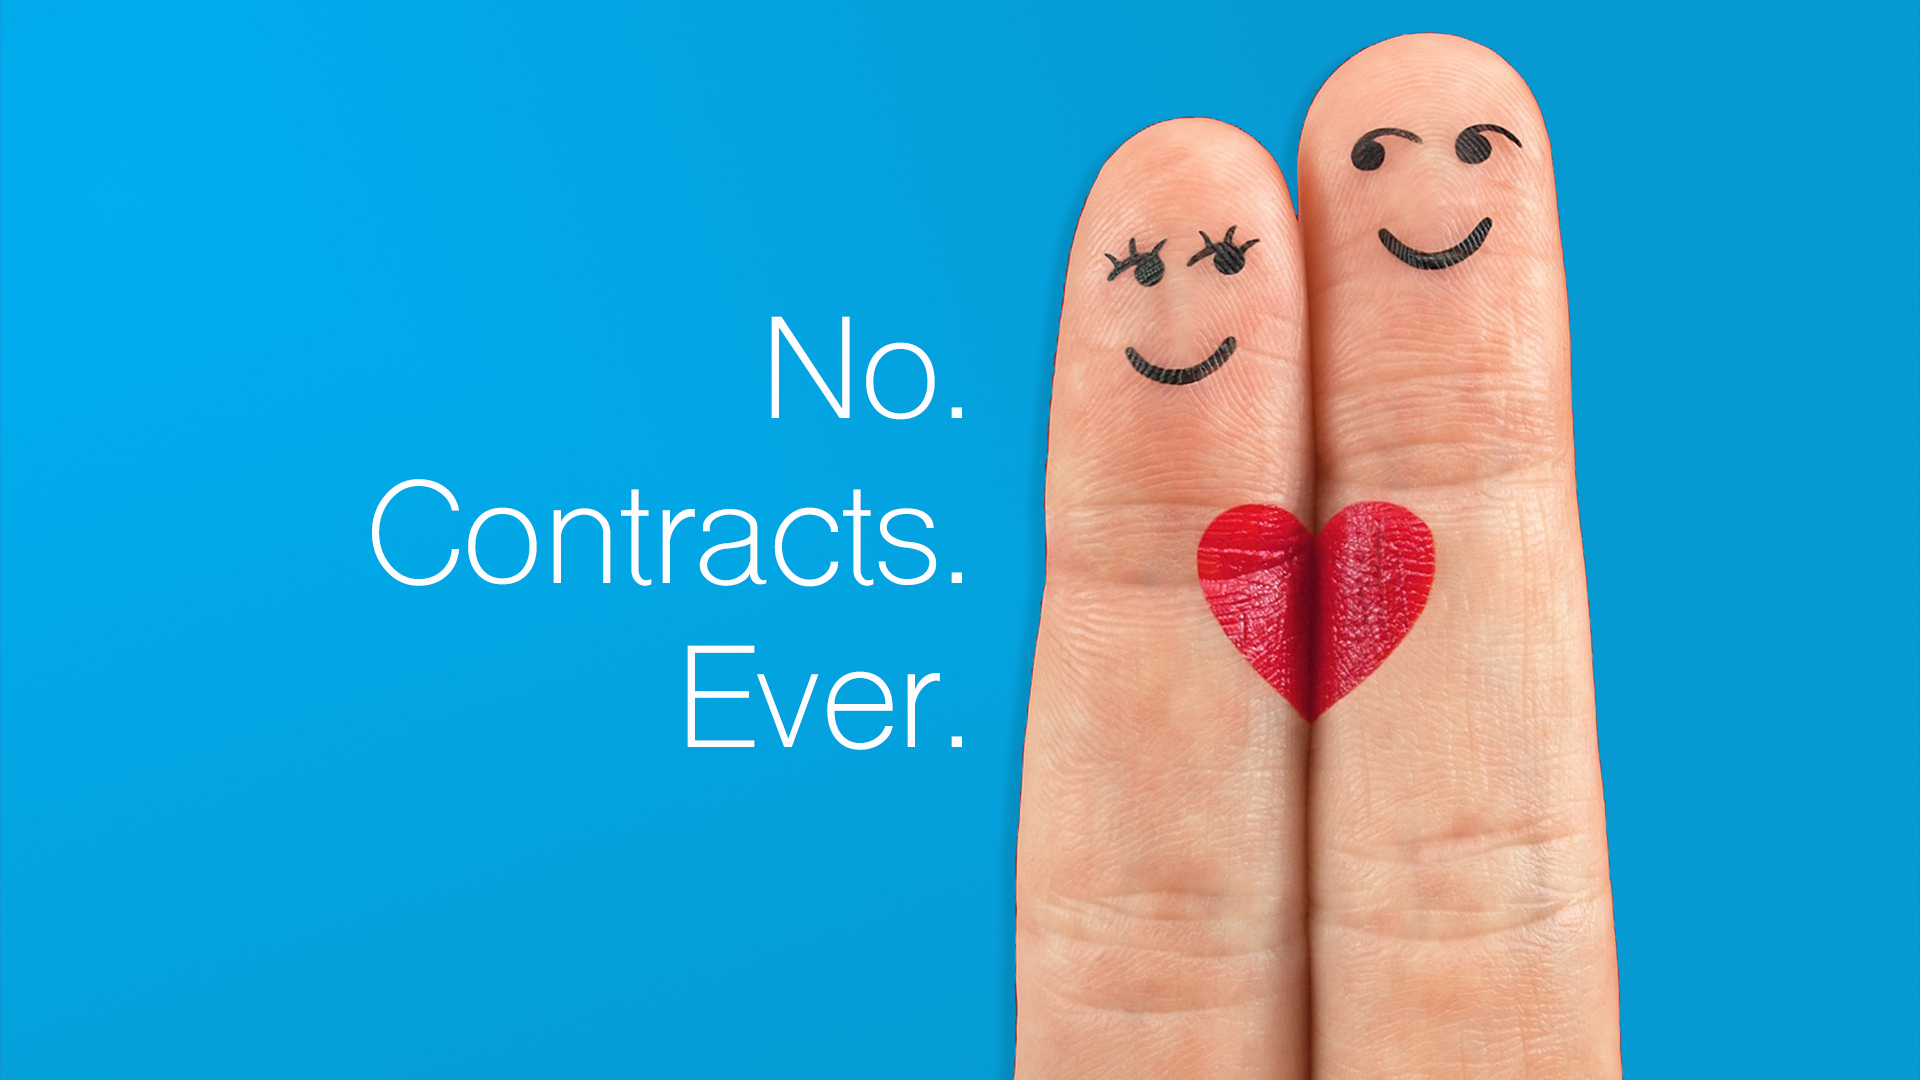 No. Contracts. Ever.